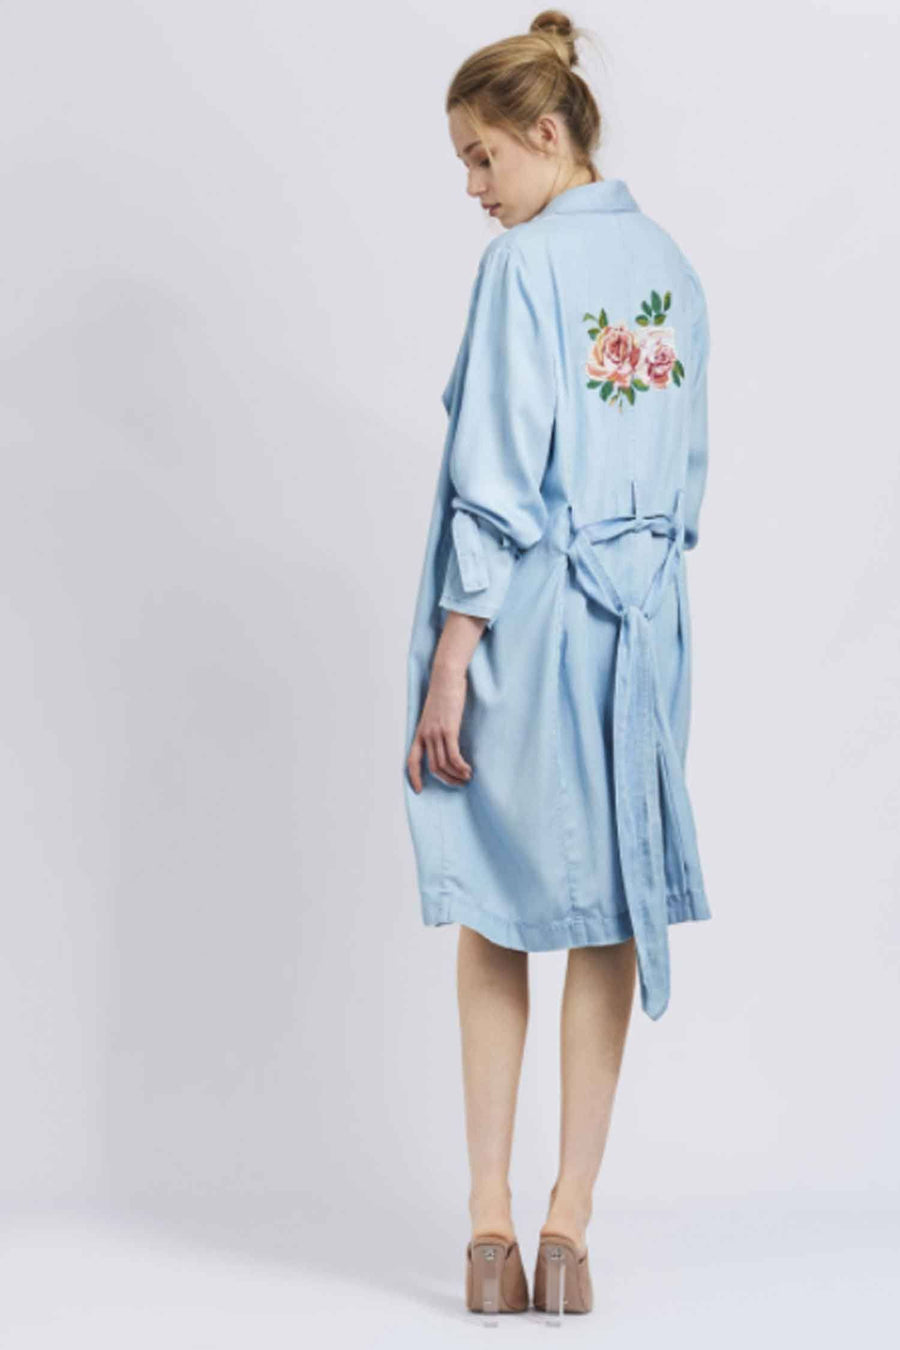 Austen Girl Trench by We Are Kindred Frockaholics.com